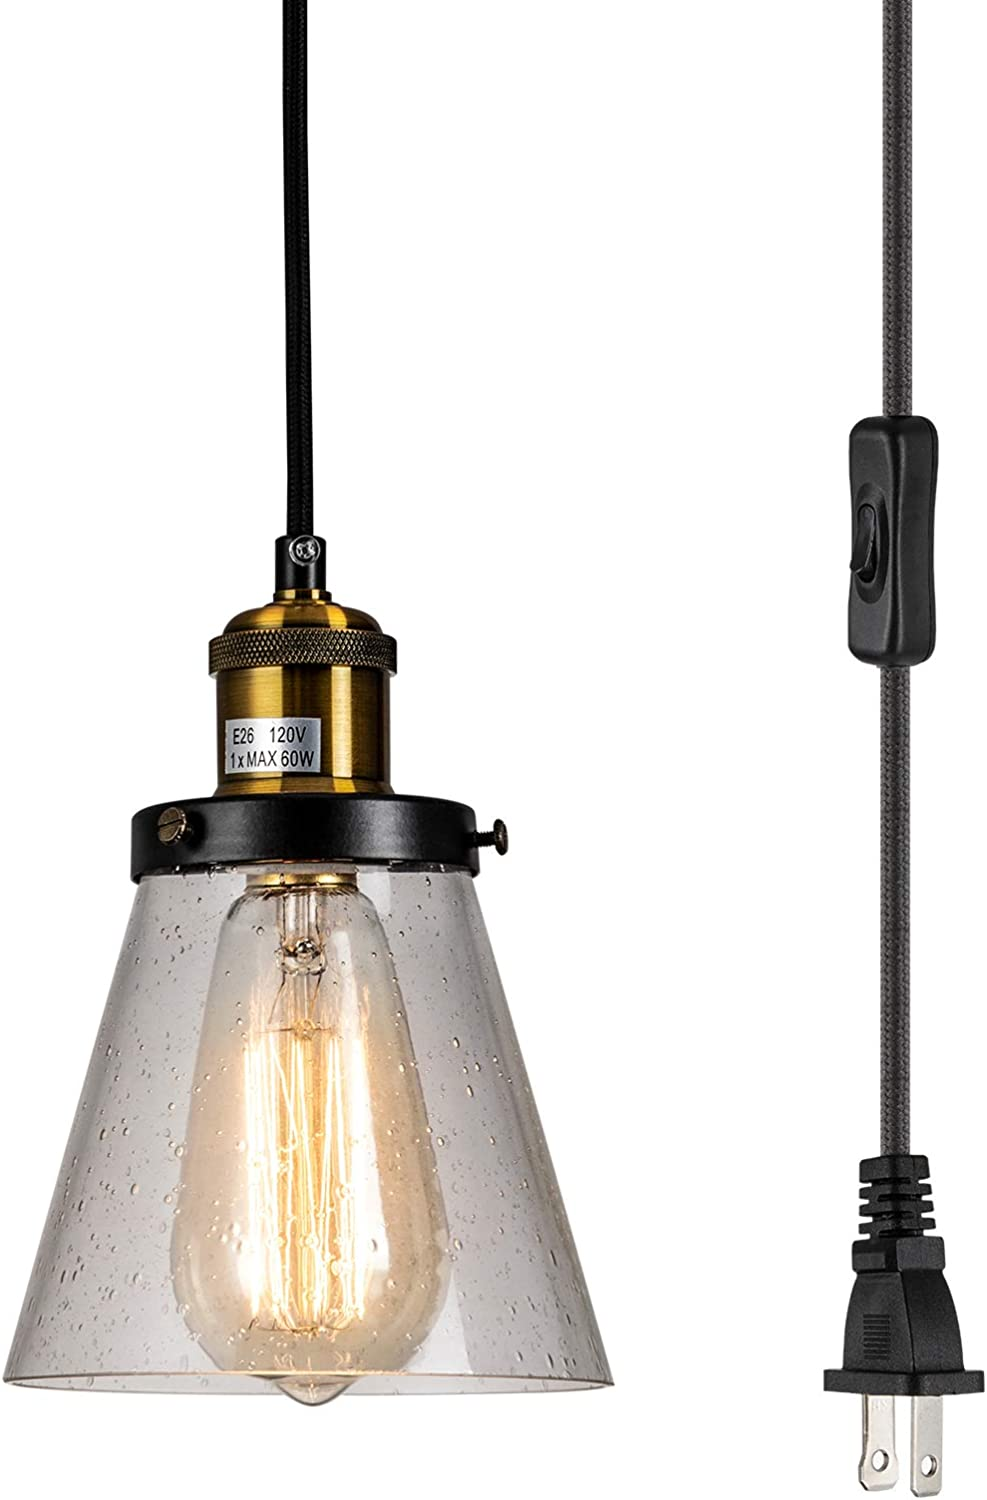 Sydtop Modern Mini Pendant Light Clear Seeded Glass Shade With 13ft Plug In Cord And On Off Switch Adjustable Vintage Farmhouse Hanging Lamp For Kitchen Island Sink Counter Bar Loft Amazon Com